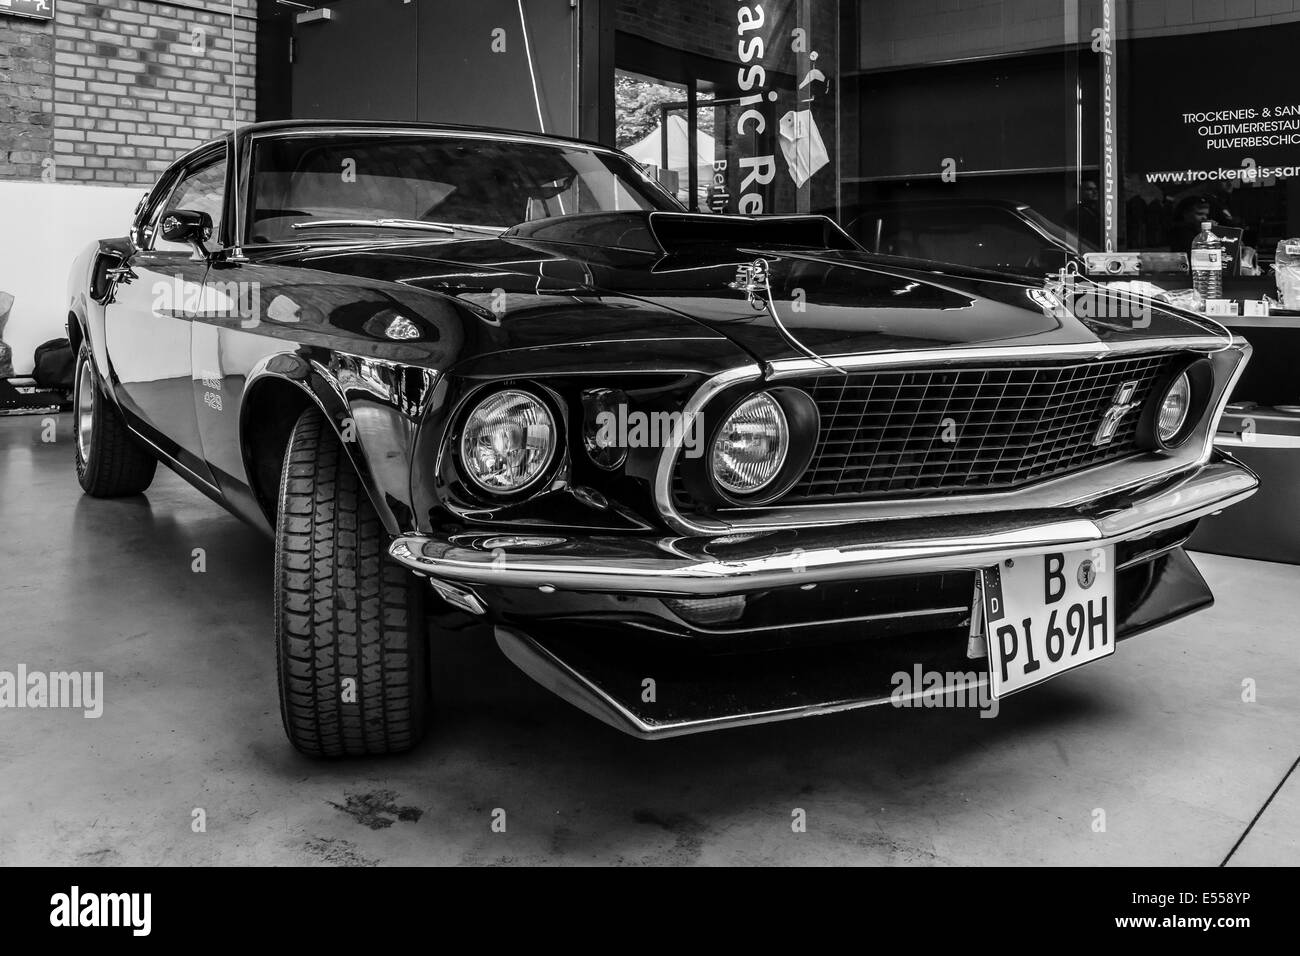 Ford Mustang White Latest Purple Mustange Racing Stripes With 1969 Hatchback Beautiful Muscle Car Boss Fastback Black And Th Oldtimer Day Berlin Brandenburg